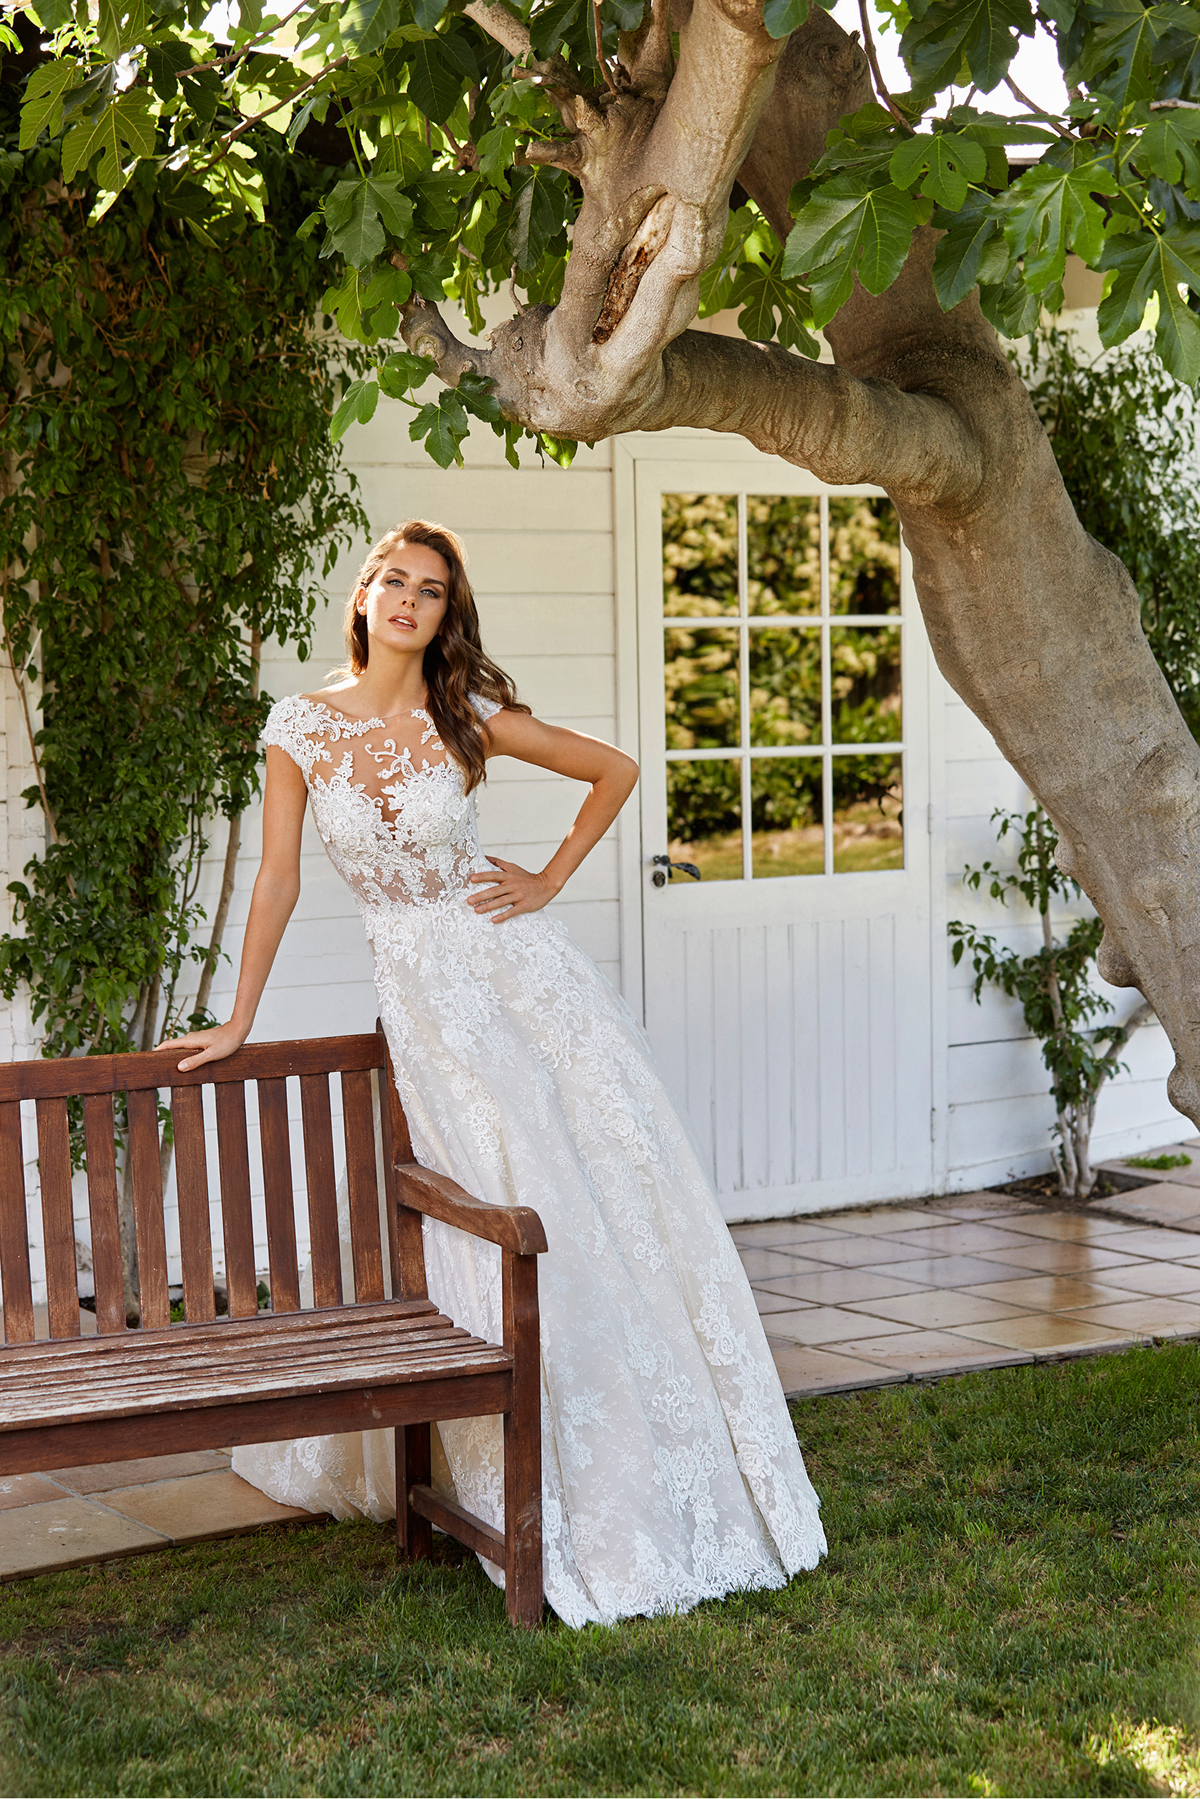 The New St Patrick Collection Is Arriving At Stockists (Bridal Fashion Get Inspired )